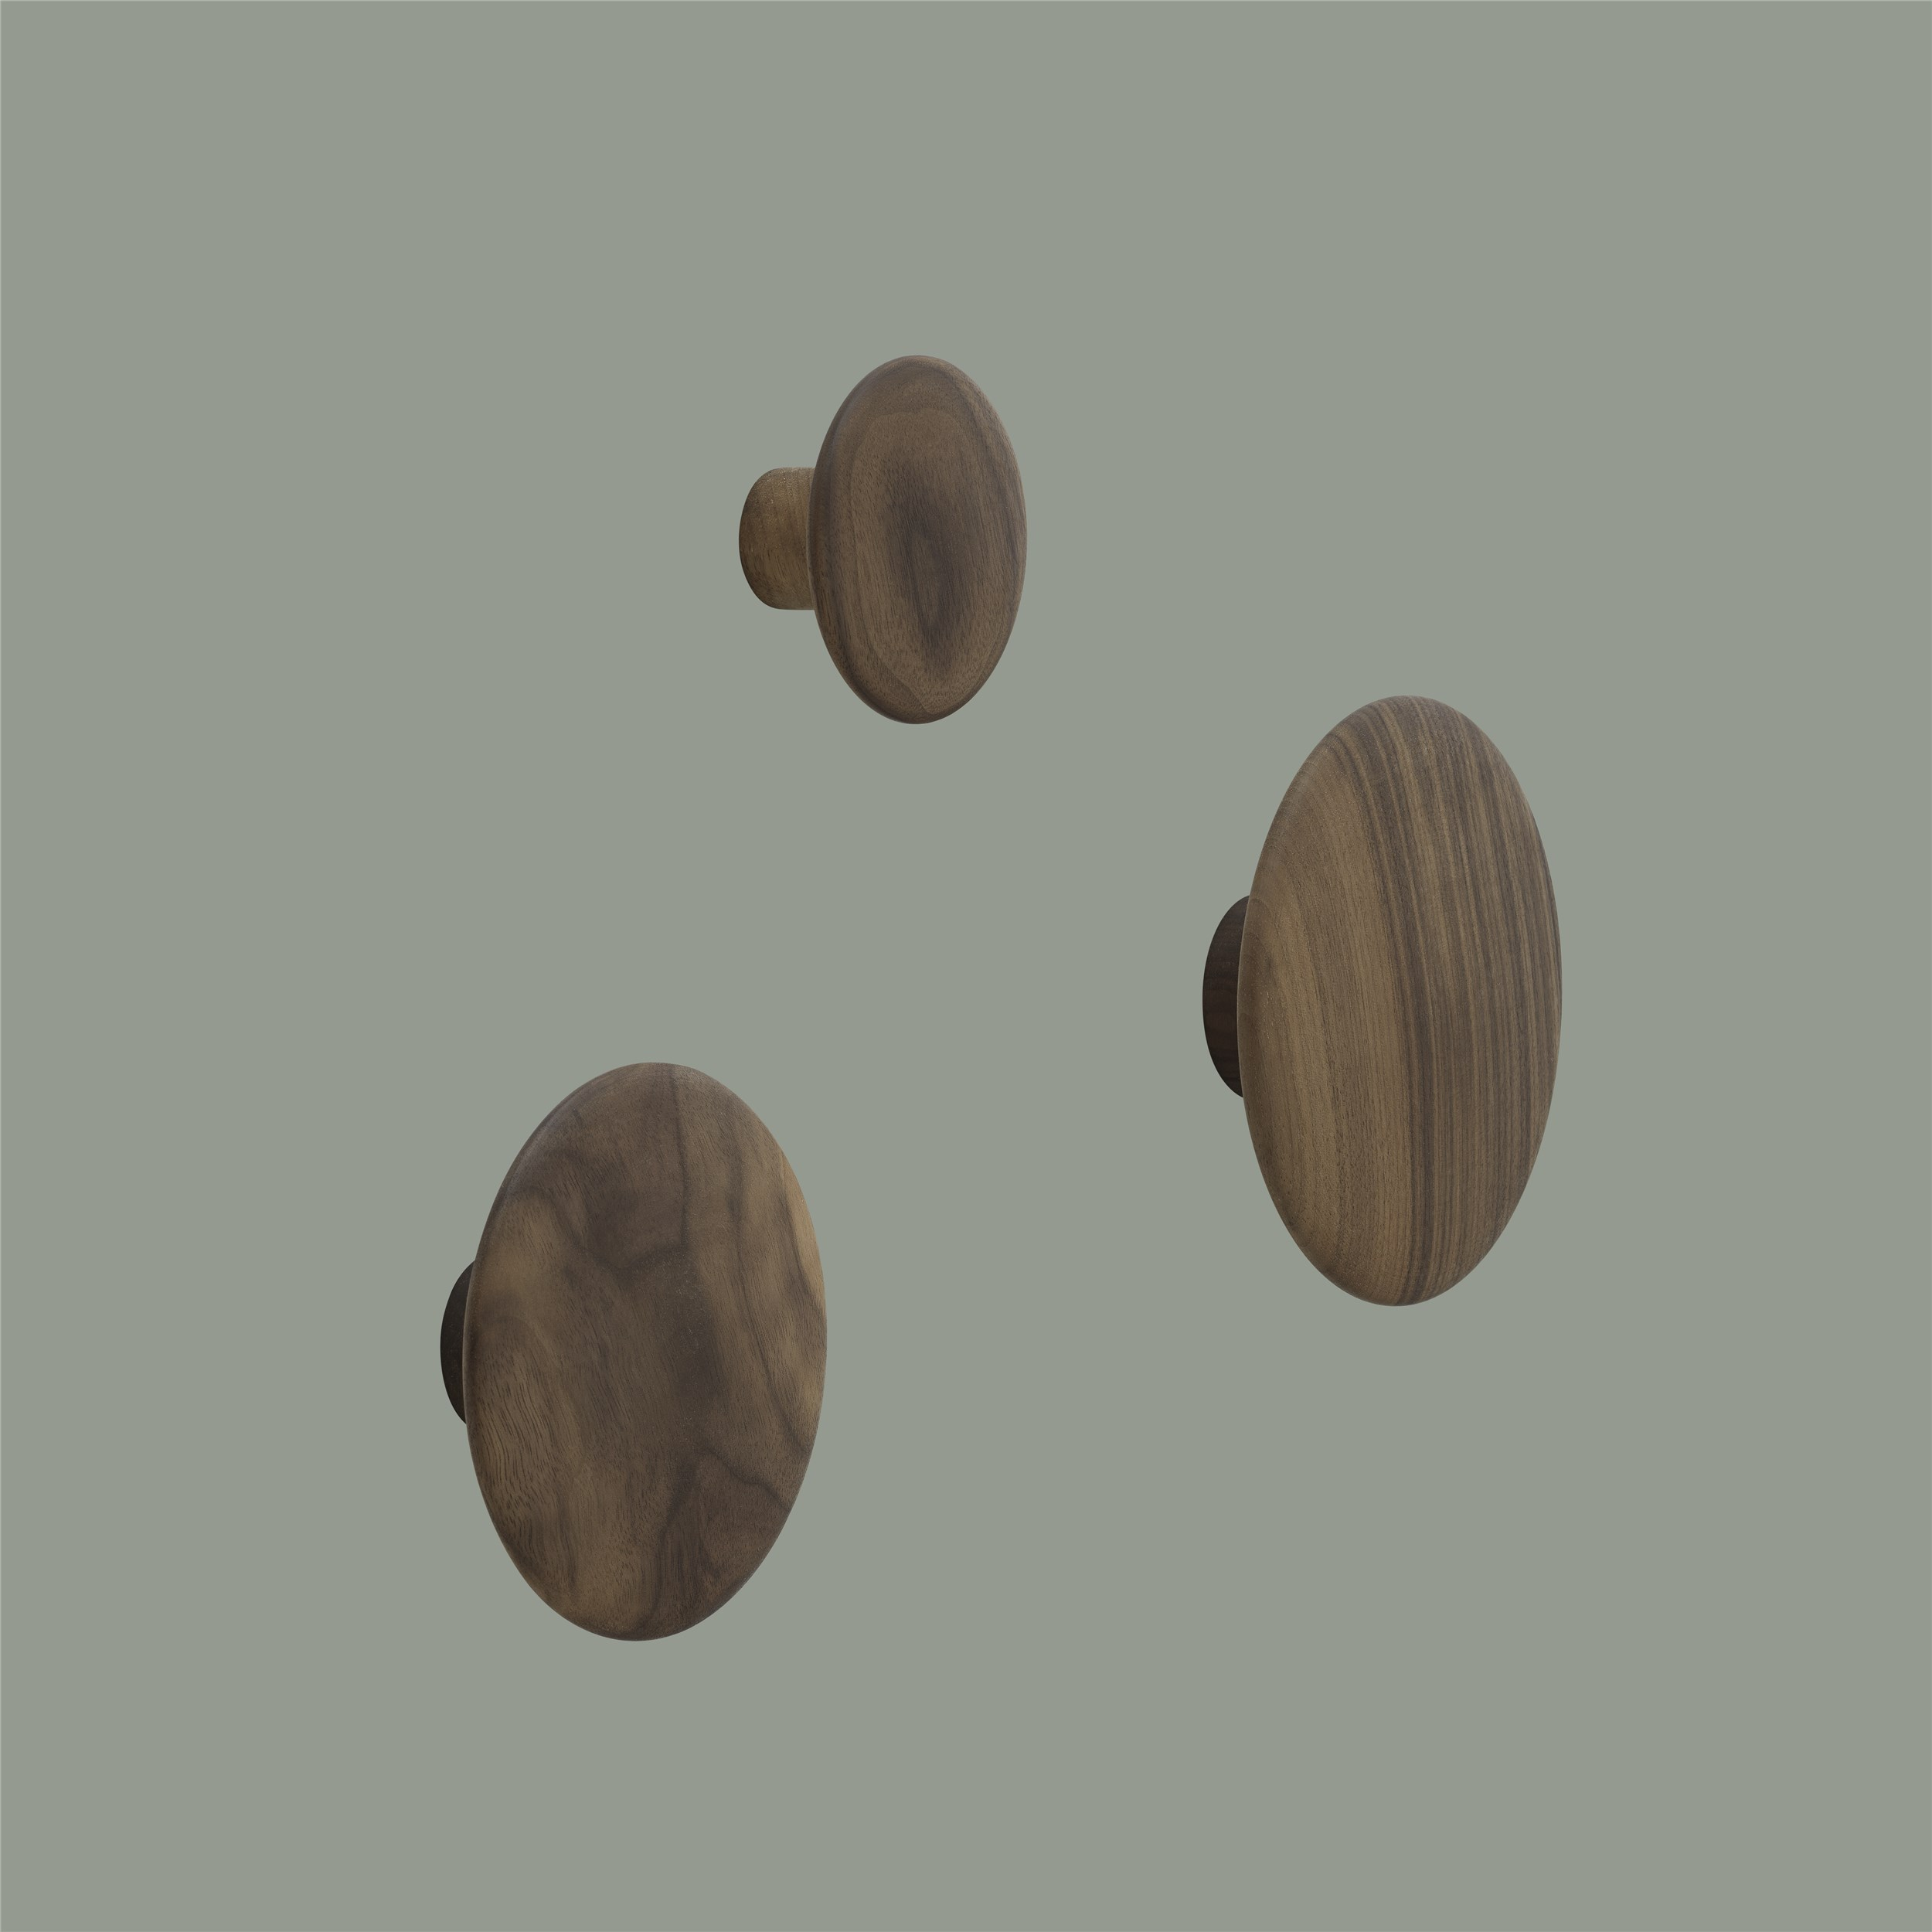 The dots, now in walnut